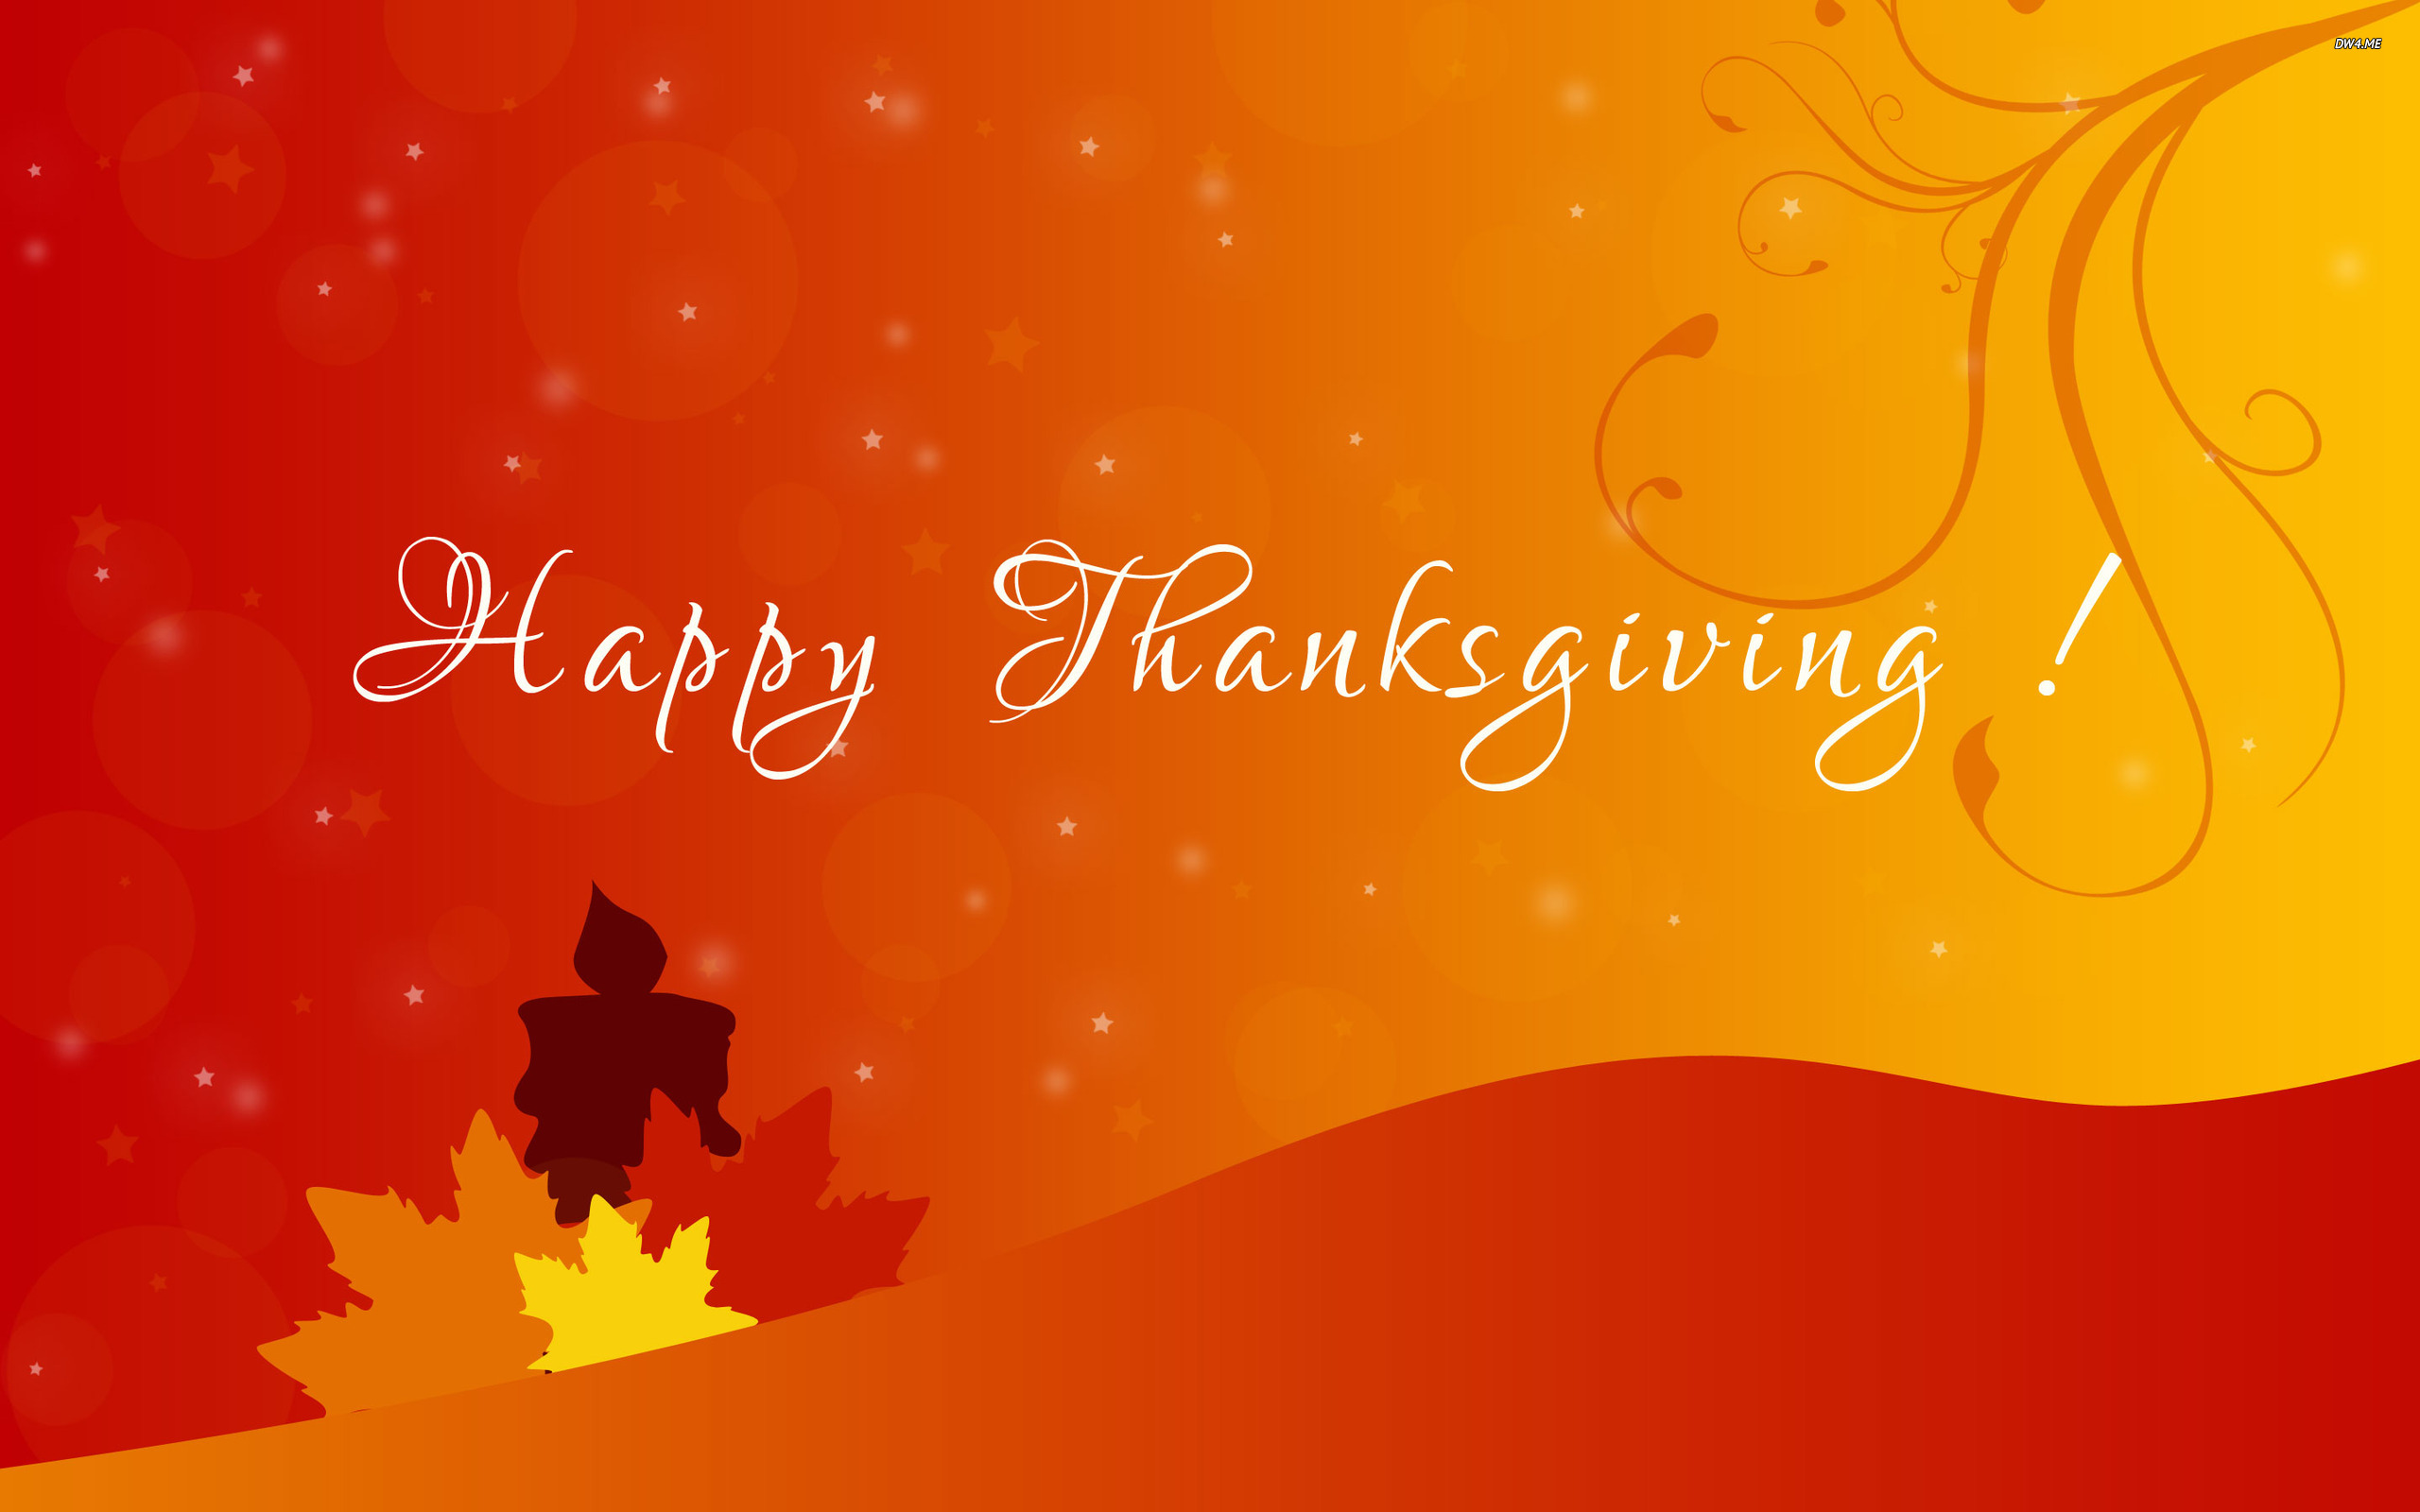 Desktop wallpapers holiday free - Thanksgiving Wallpapers Holidays For Your Computers And Phones Pinterest Wallpapers And Thanksgiving